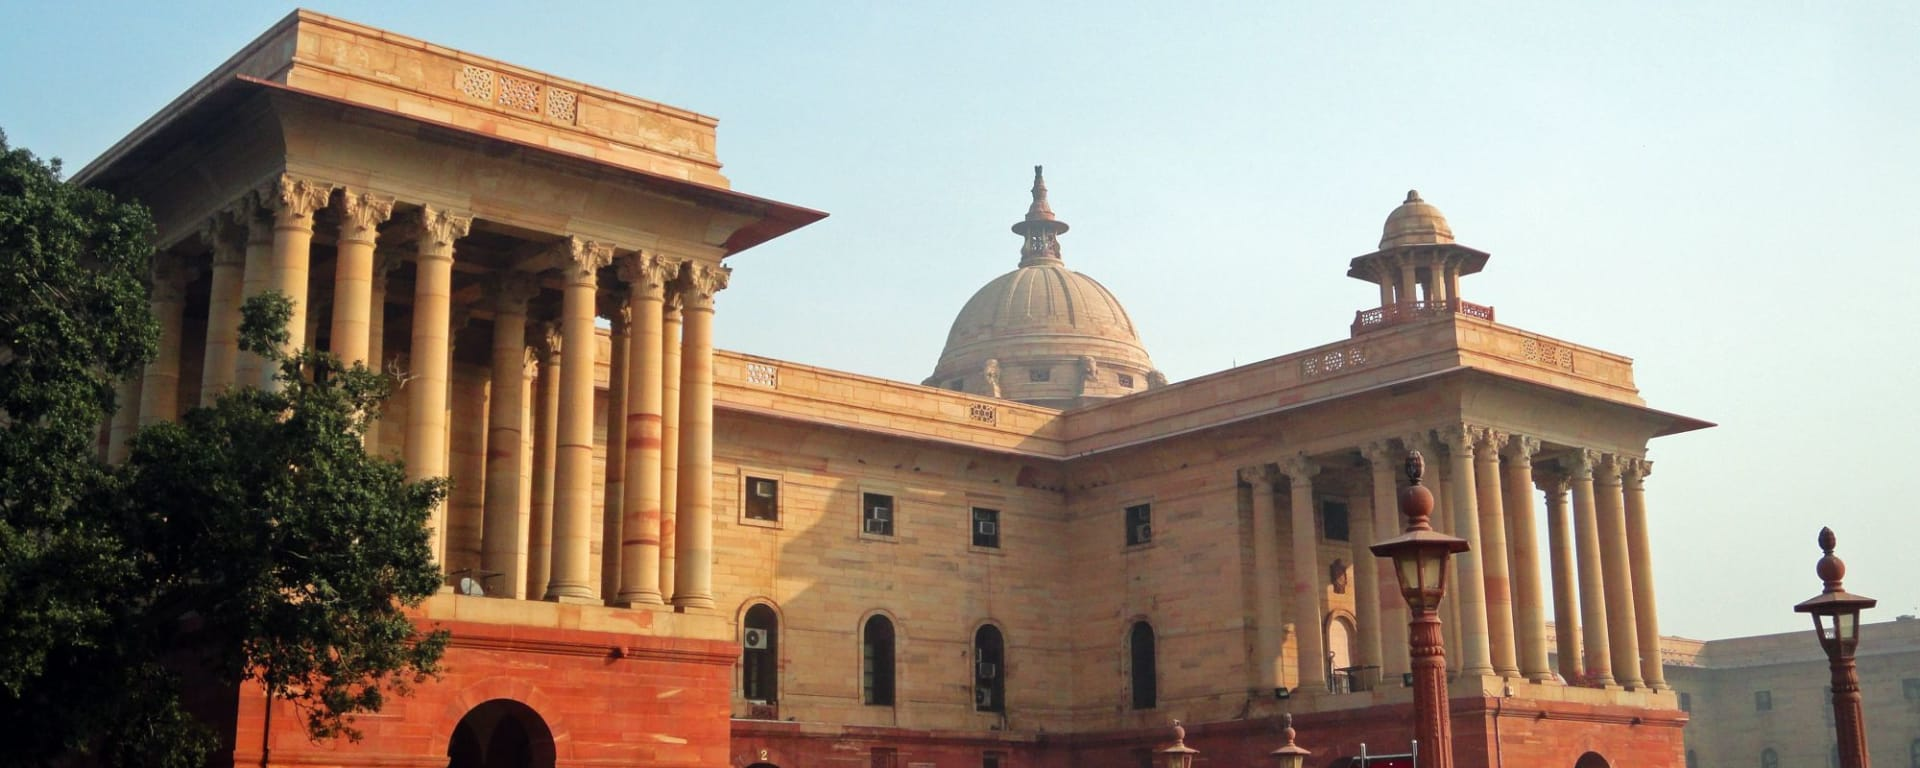 New Delhi: Delhi: Parliament Building